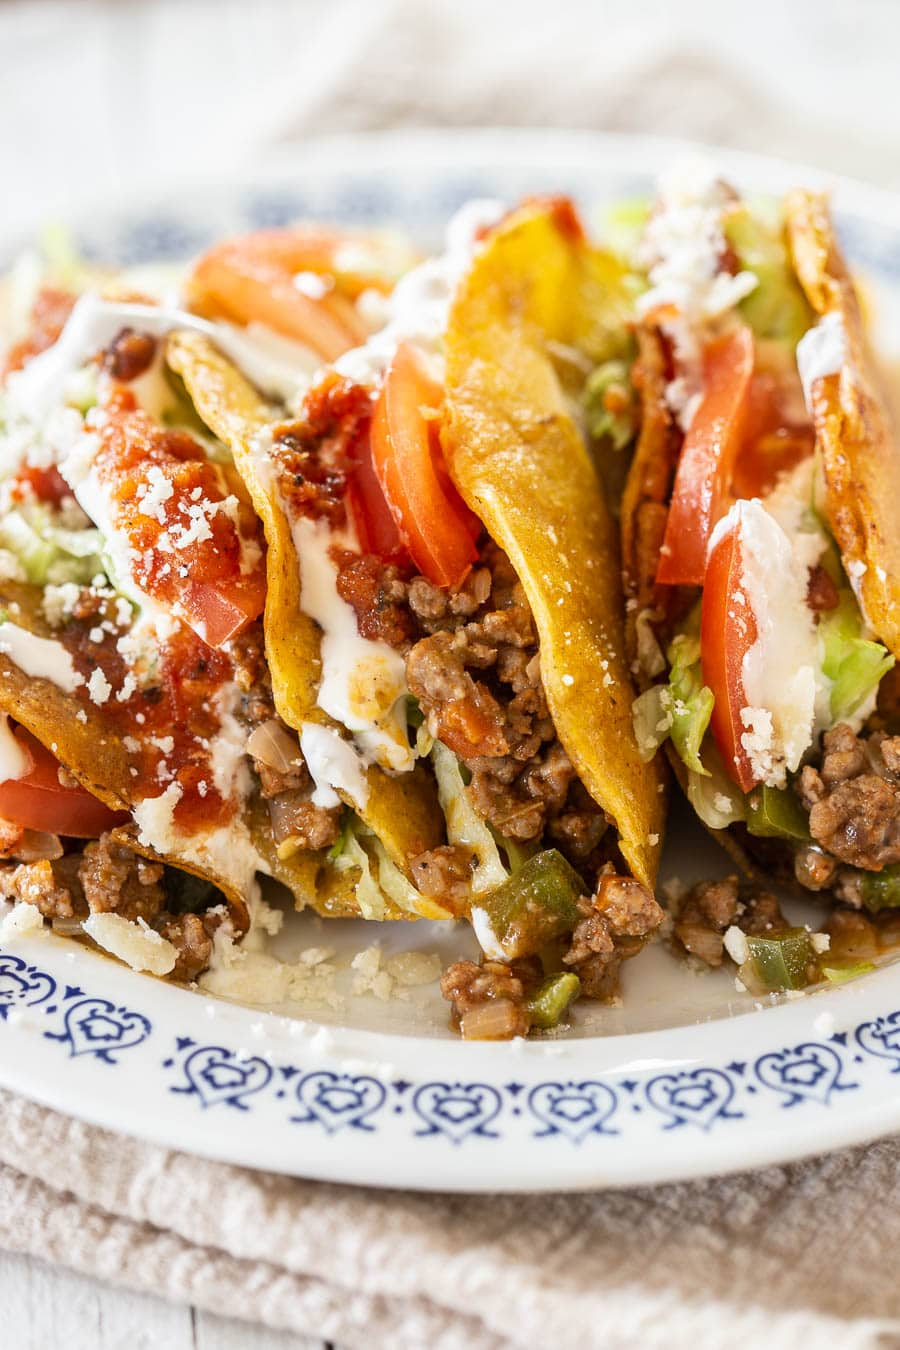 Picadillo tacos on a plate.